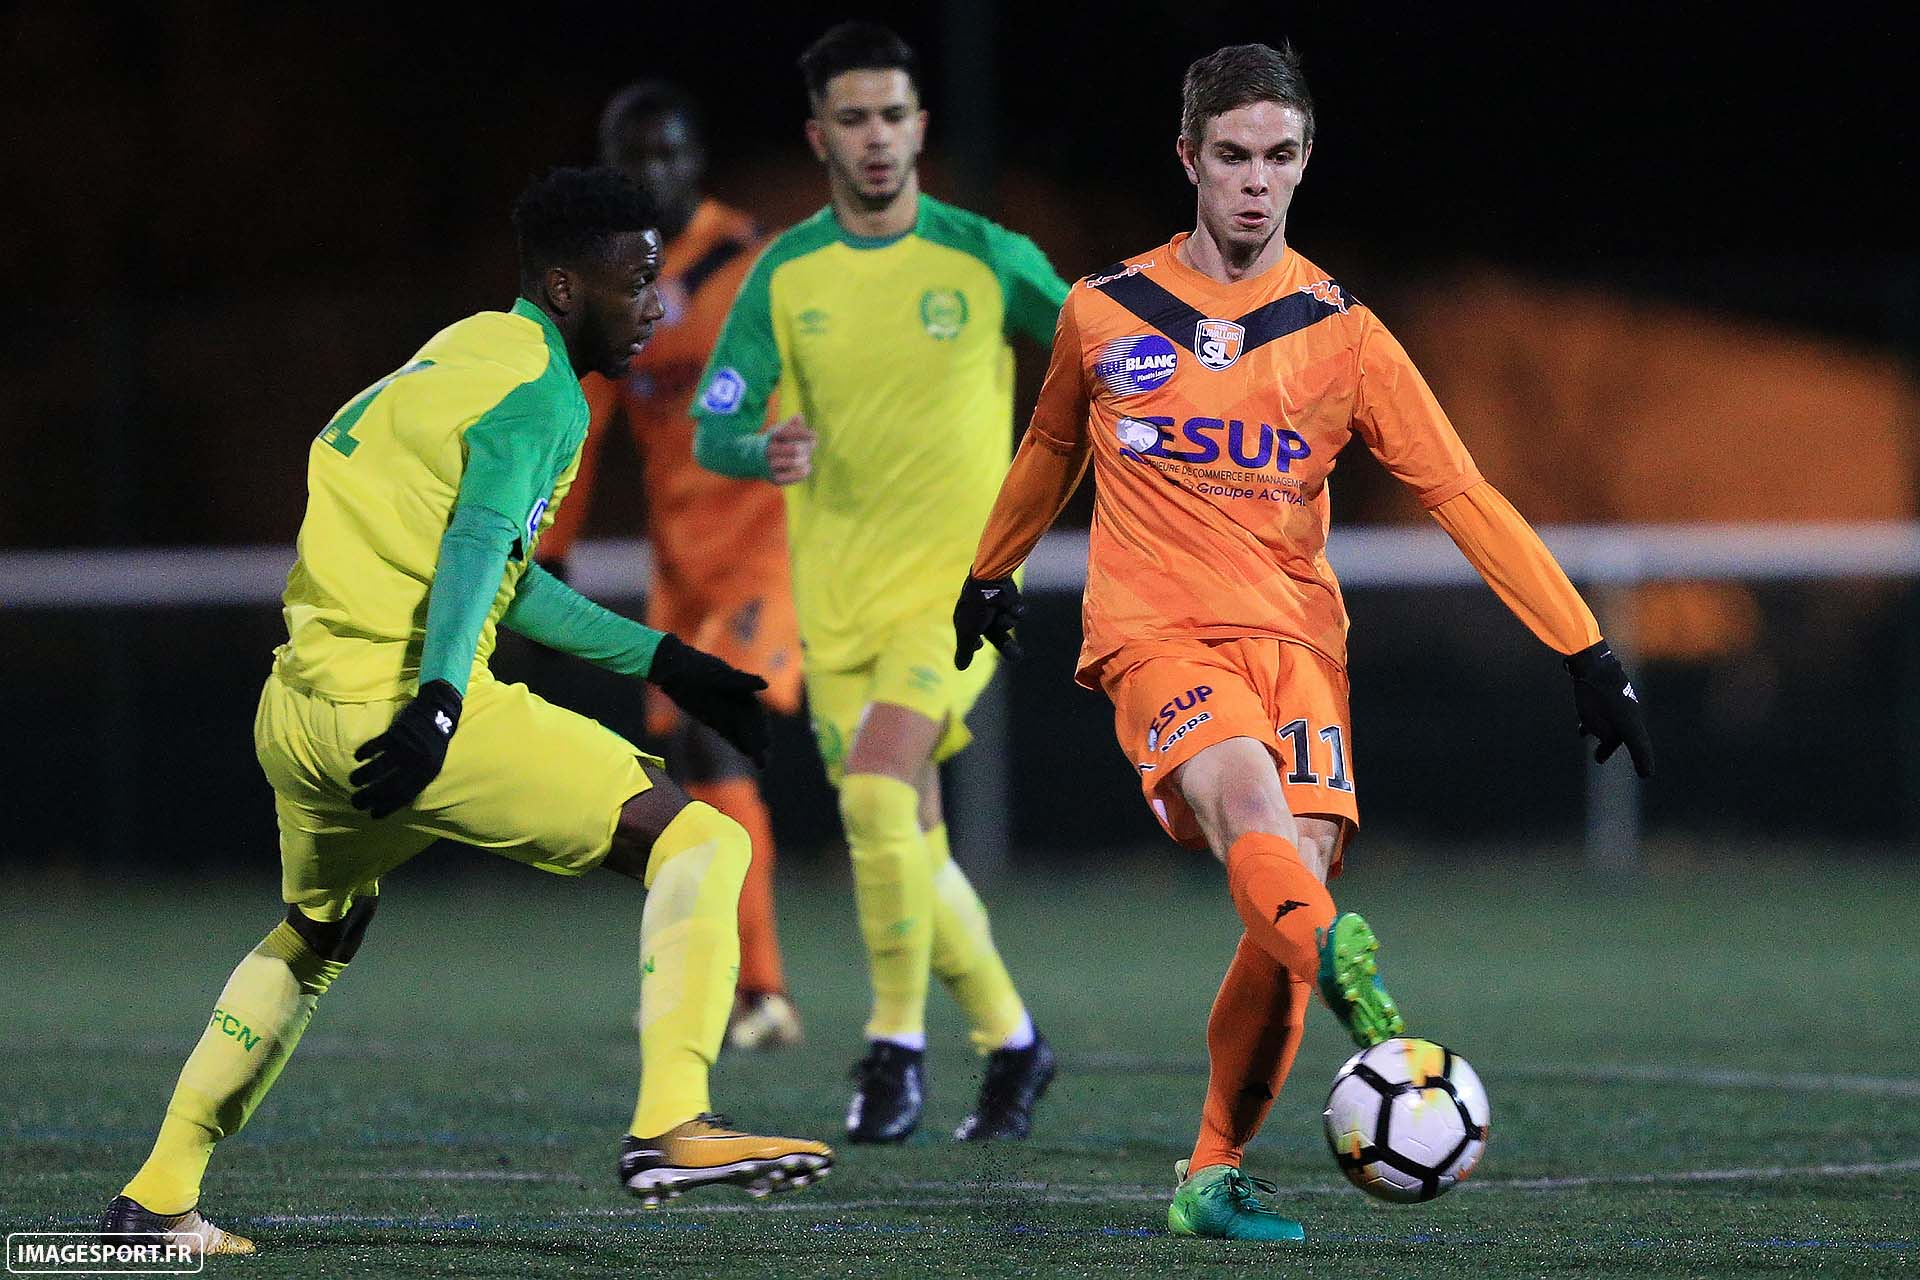 13-stade-lavallois-imagesport-couvry